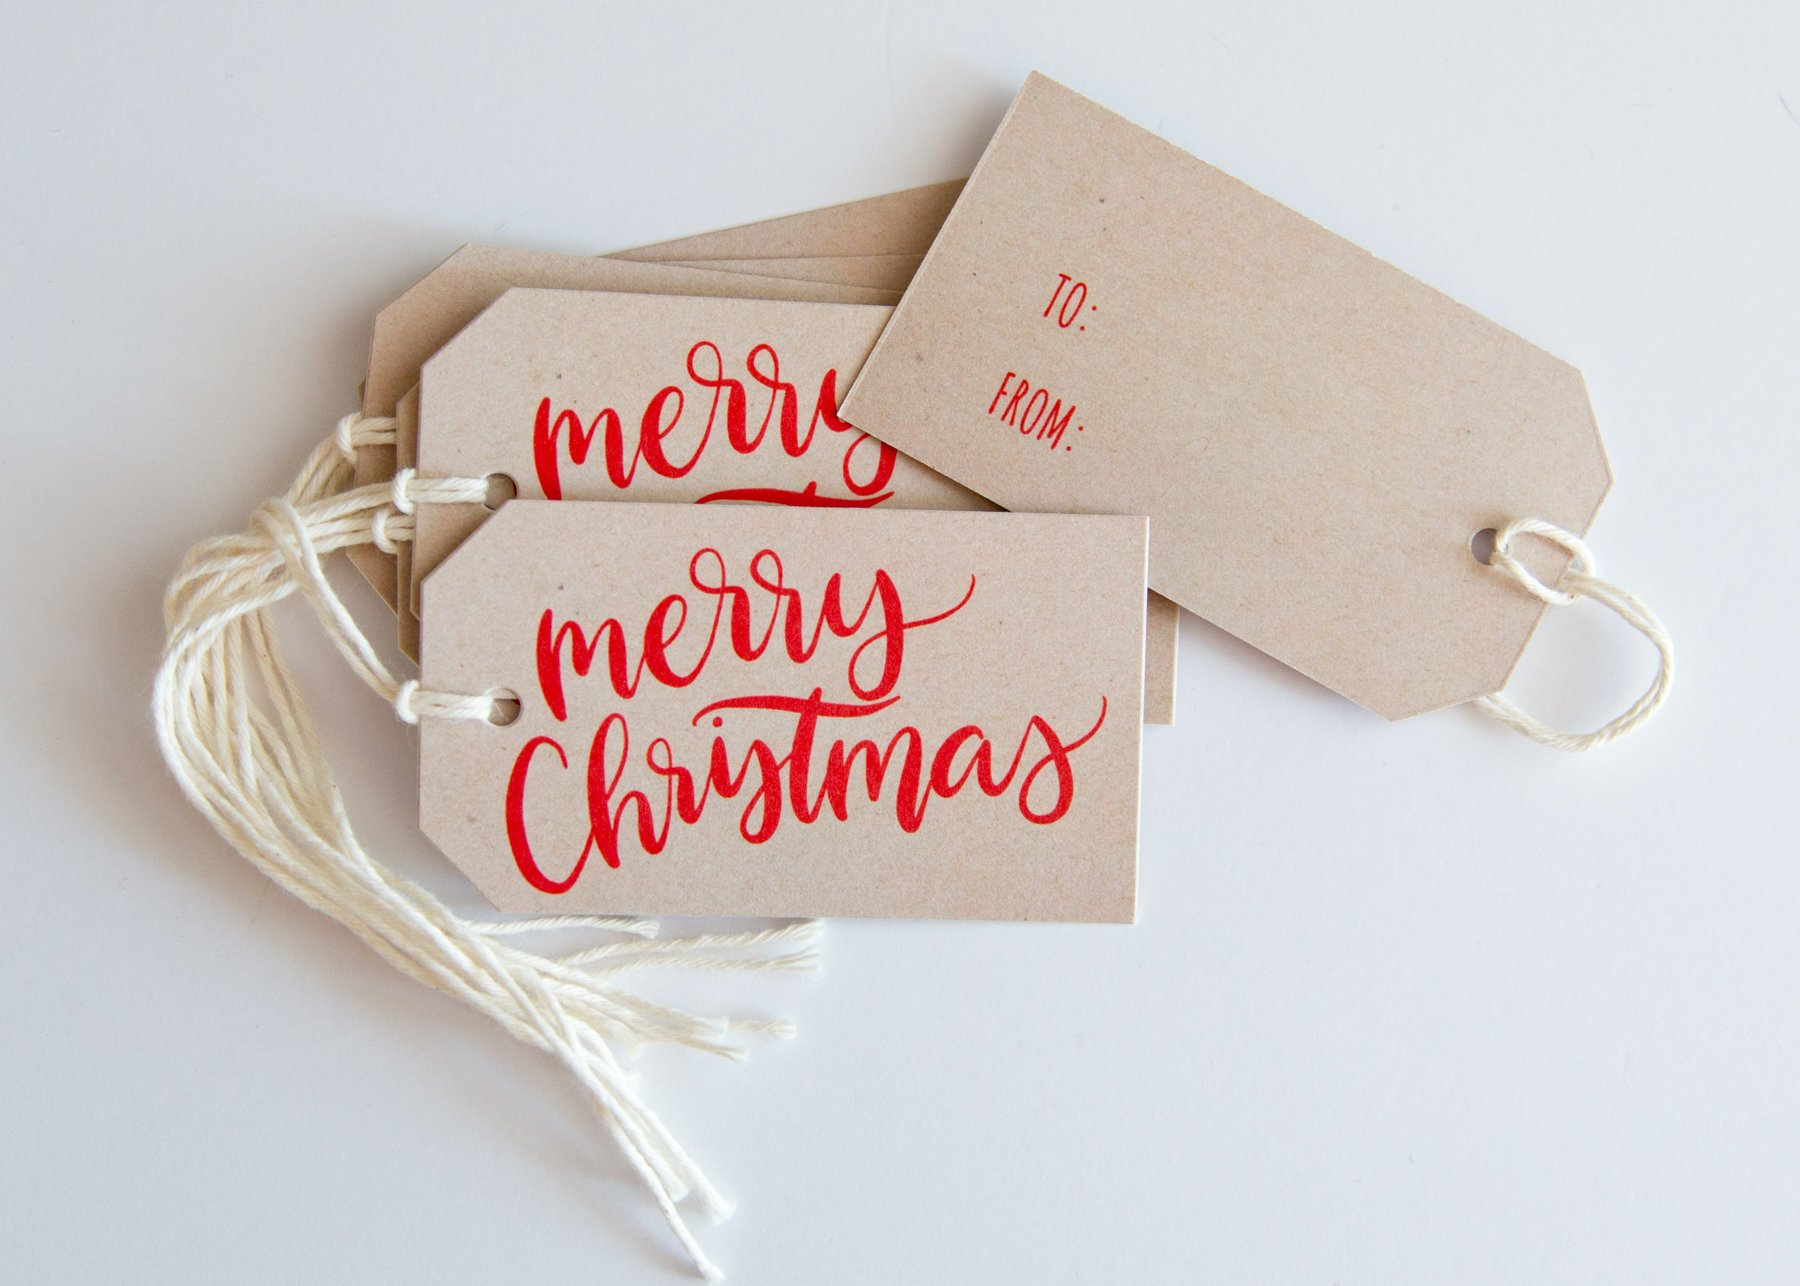 Merry Christmas Gift Tags.Hand Lettered Merry Christmas Gift Tags Fresh Cut Prints